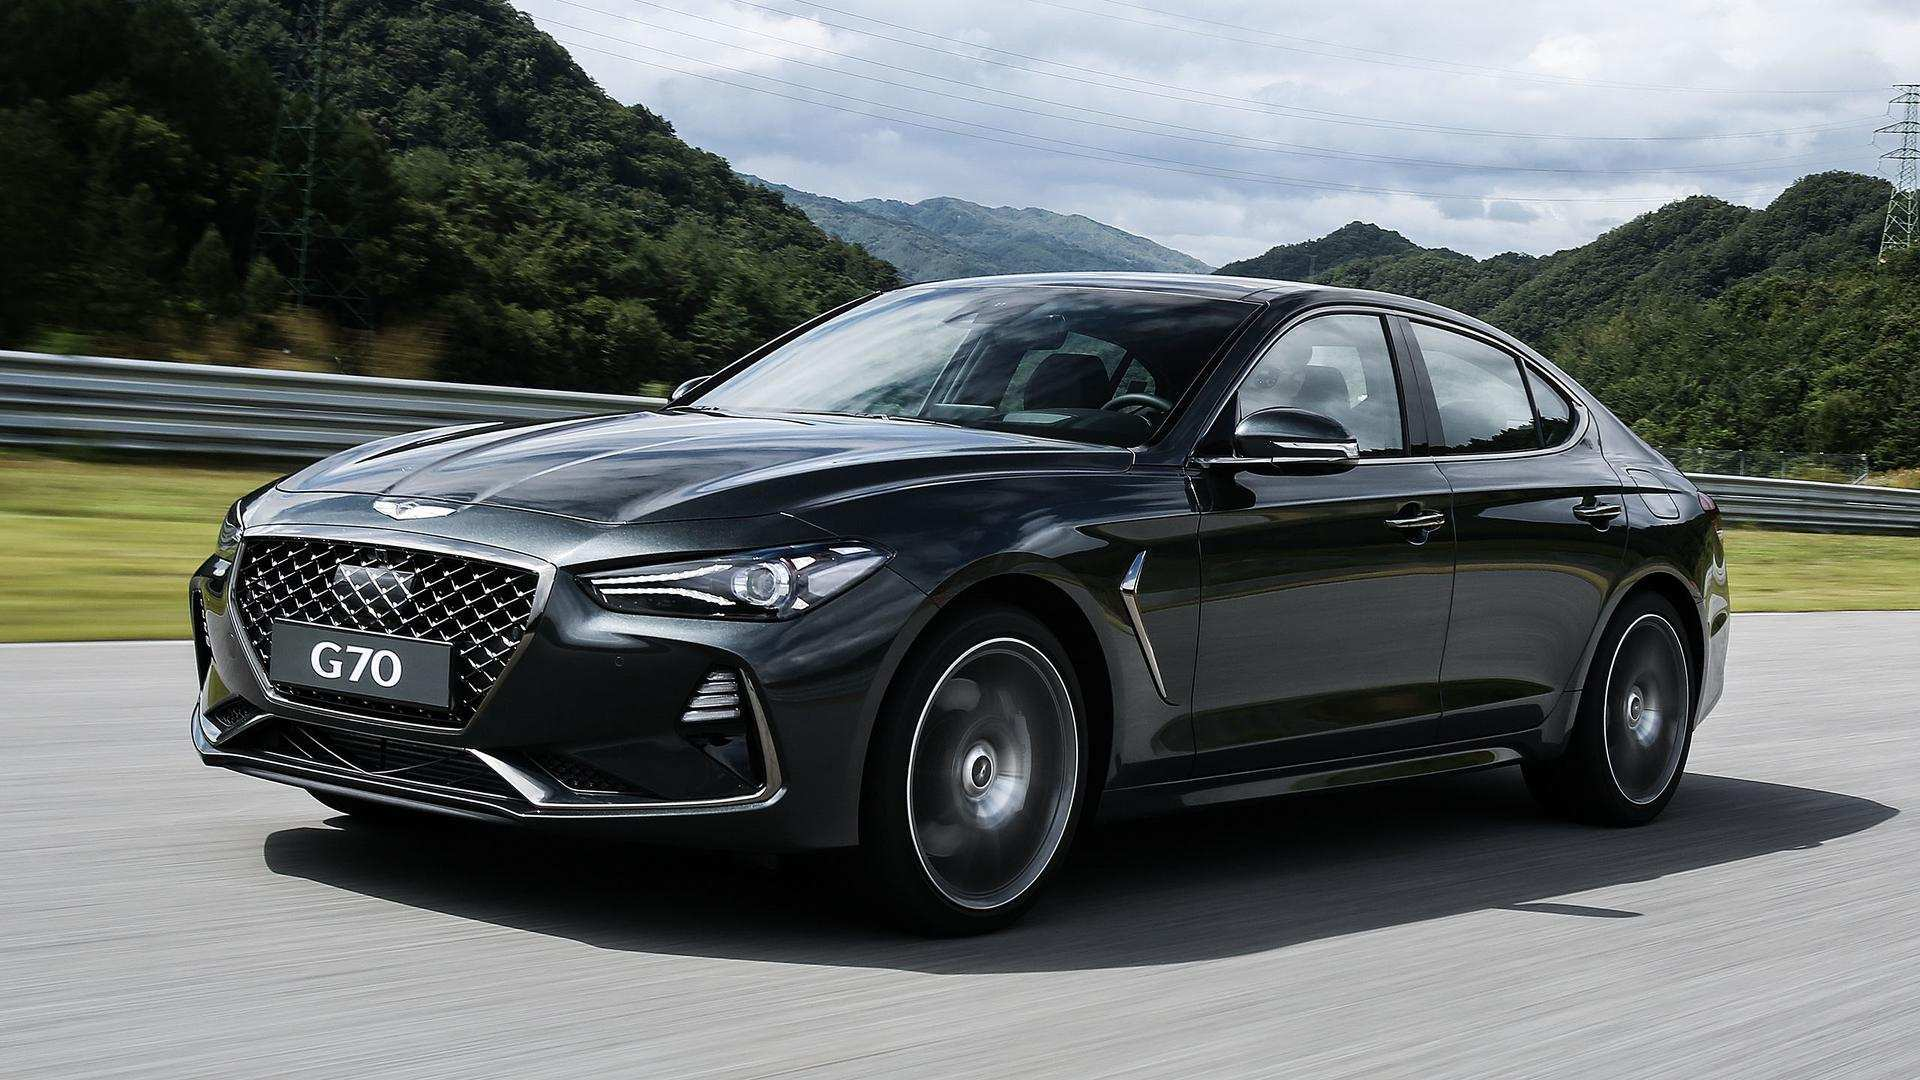 20 Best Review 2019 Genesis G70 Price Redesign by 2019 Genesis G70 Price